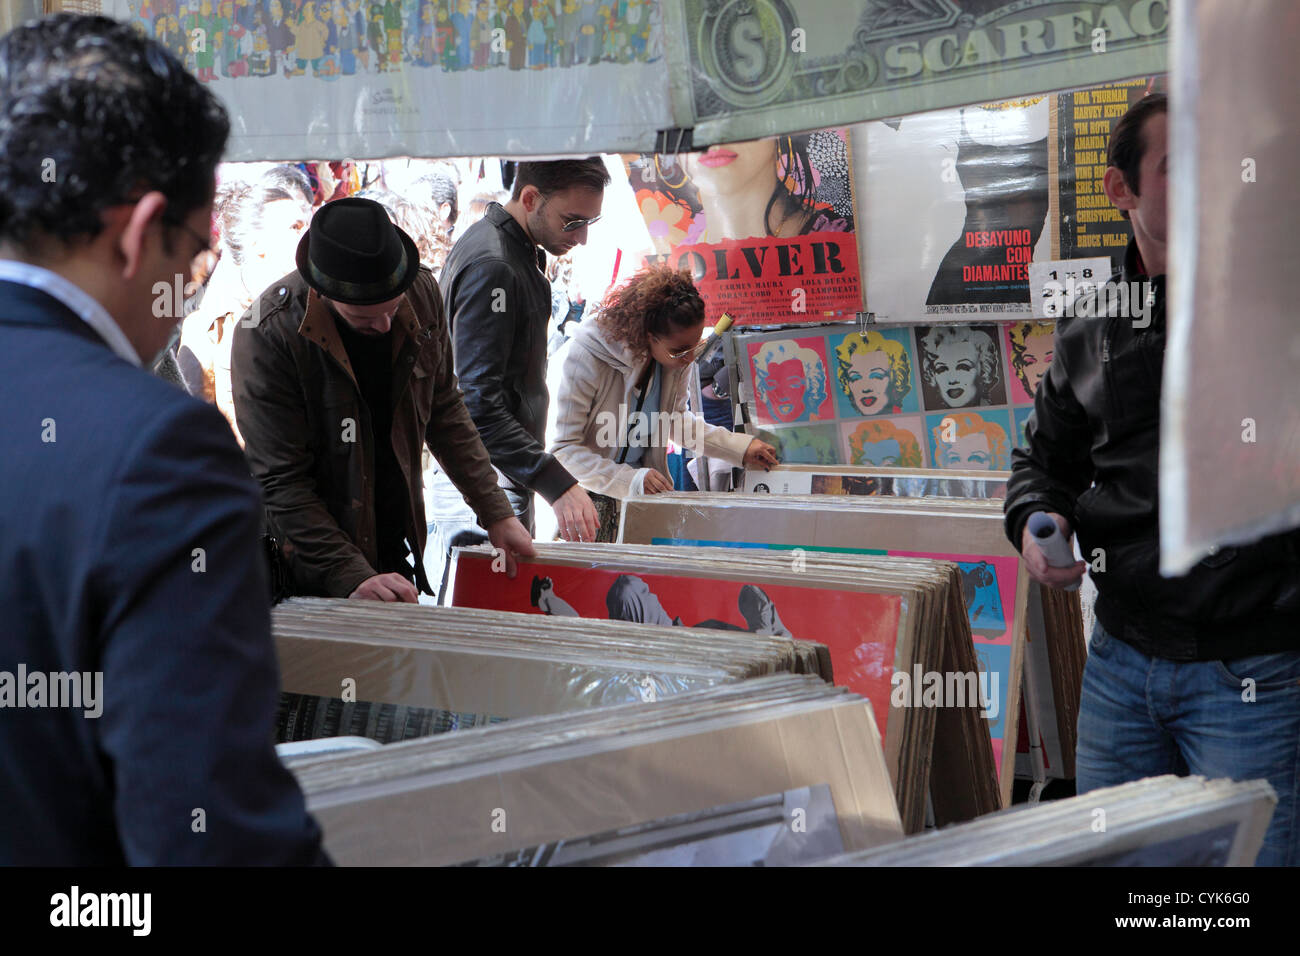 Shoppers browsers flick through posters reproduction art works, flea market El Rastro Madrid, Spain - Stock Image